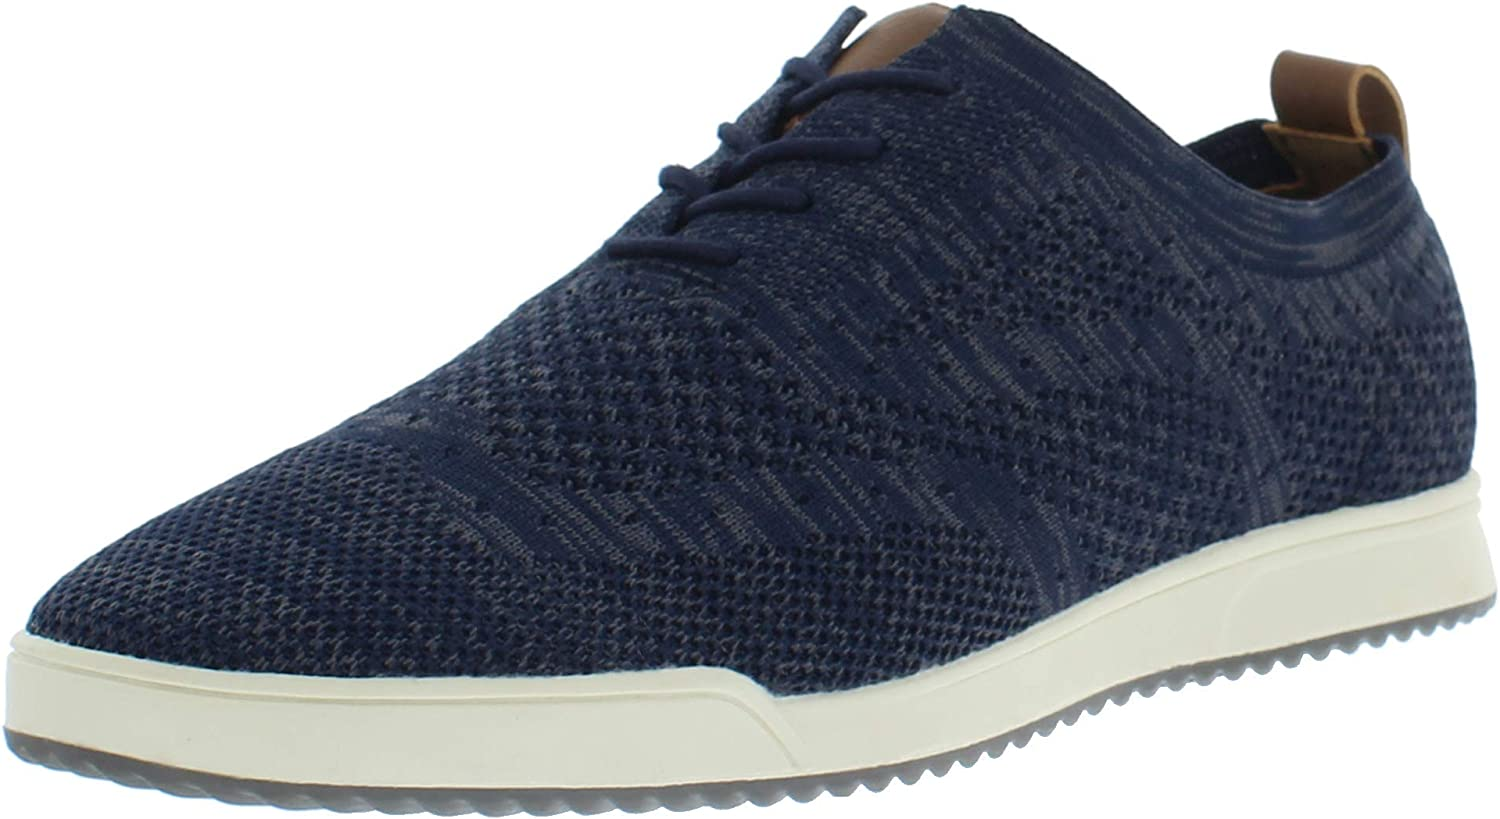 IZOD Flyaway Blue Oxford Limited Special Price Casual Shoes Fashionable for Men Wingtip Memory Fo